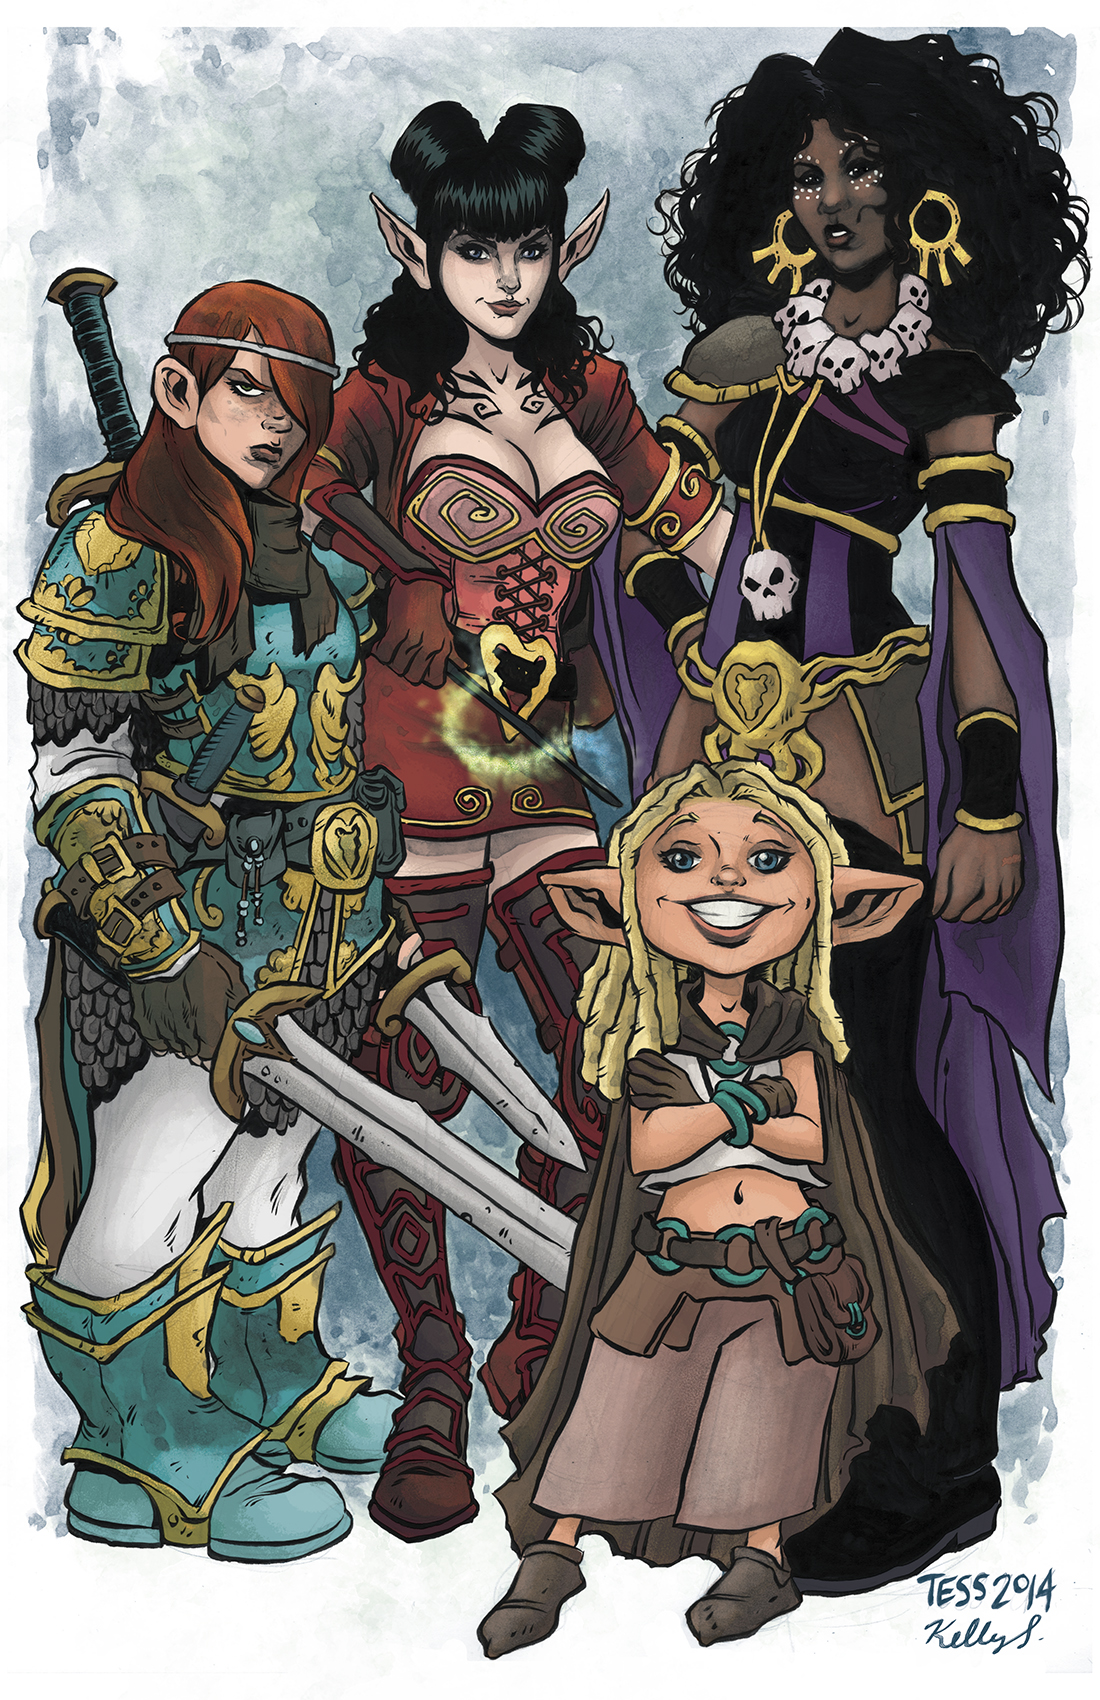 Rat Queens pin-up!   Inks by the amazing Tess Fowler. Colors by Kelly Fitzpatrick   Original here: http://tessfowler.tumblr.com/post/79638507927/rat-queens-fan-art-by-tess-fowler-rat-queens-is     Happy Colorist Appreciation Day!!